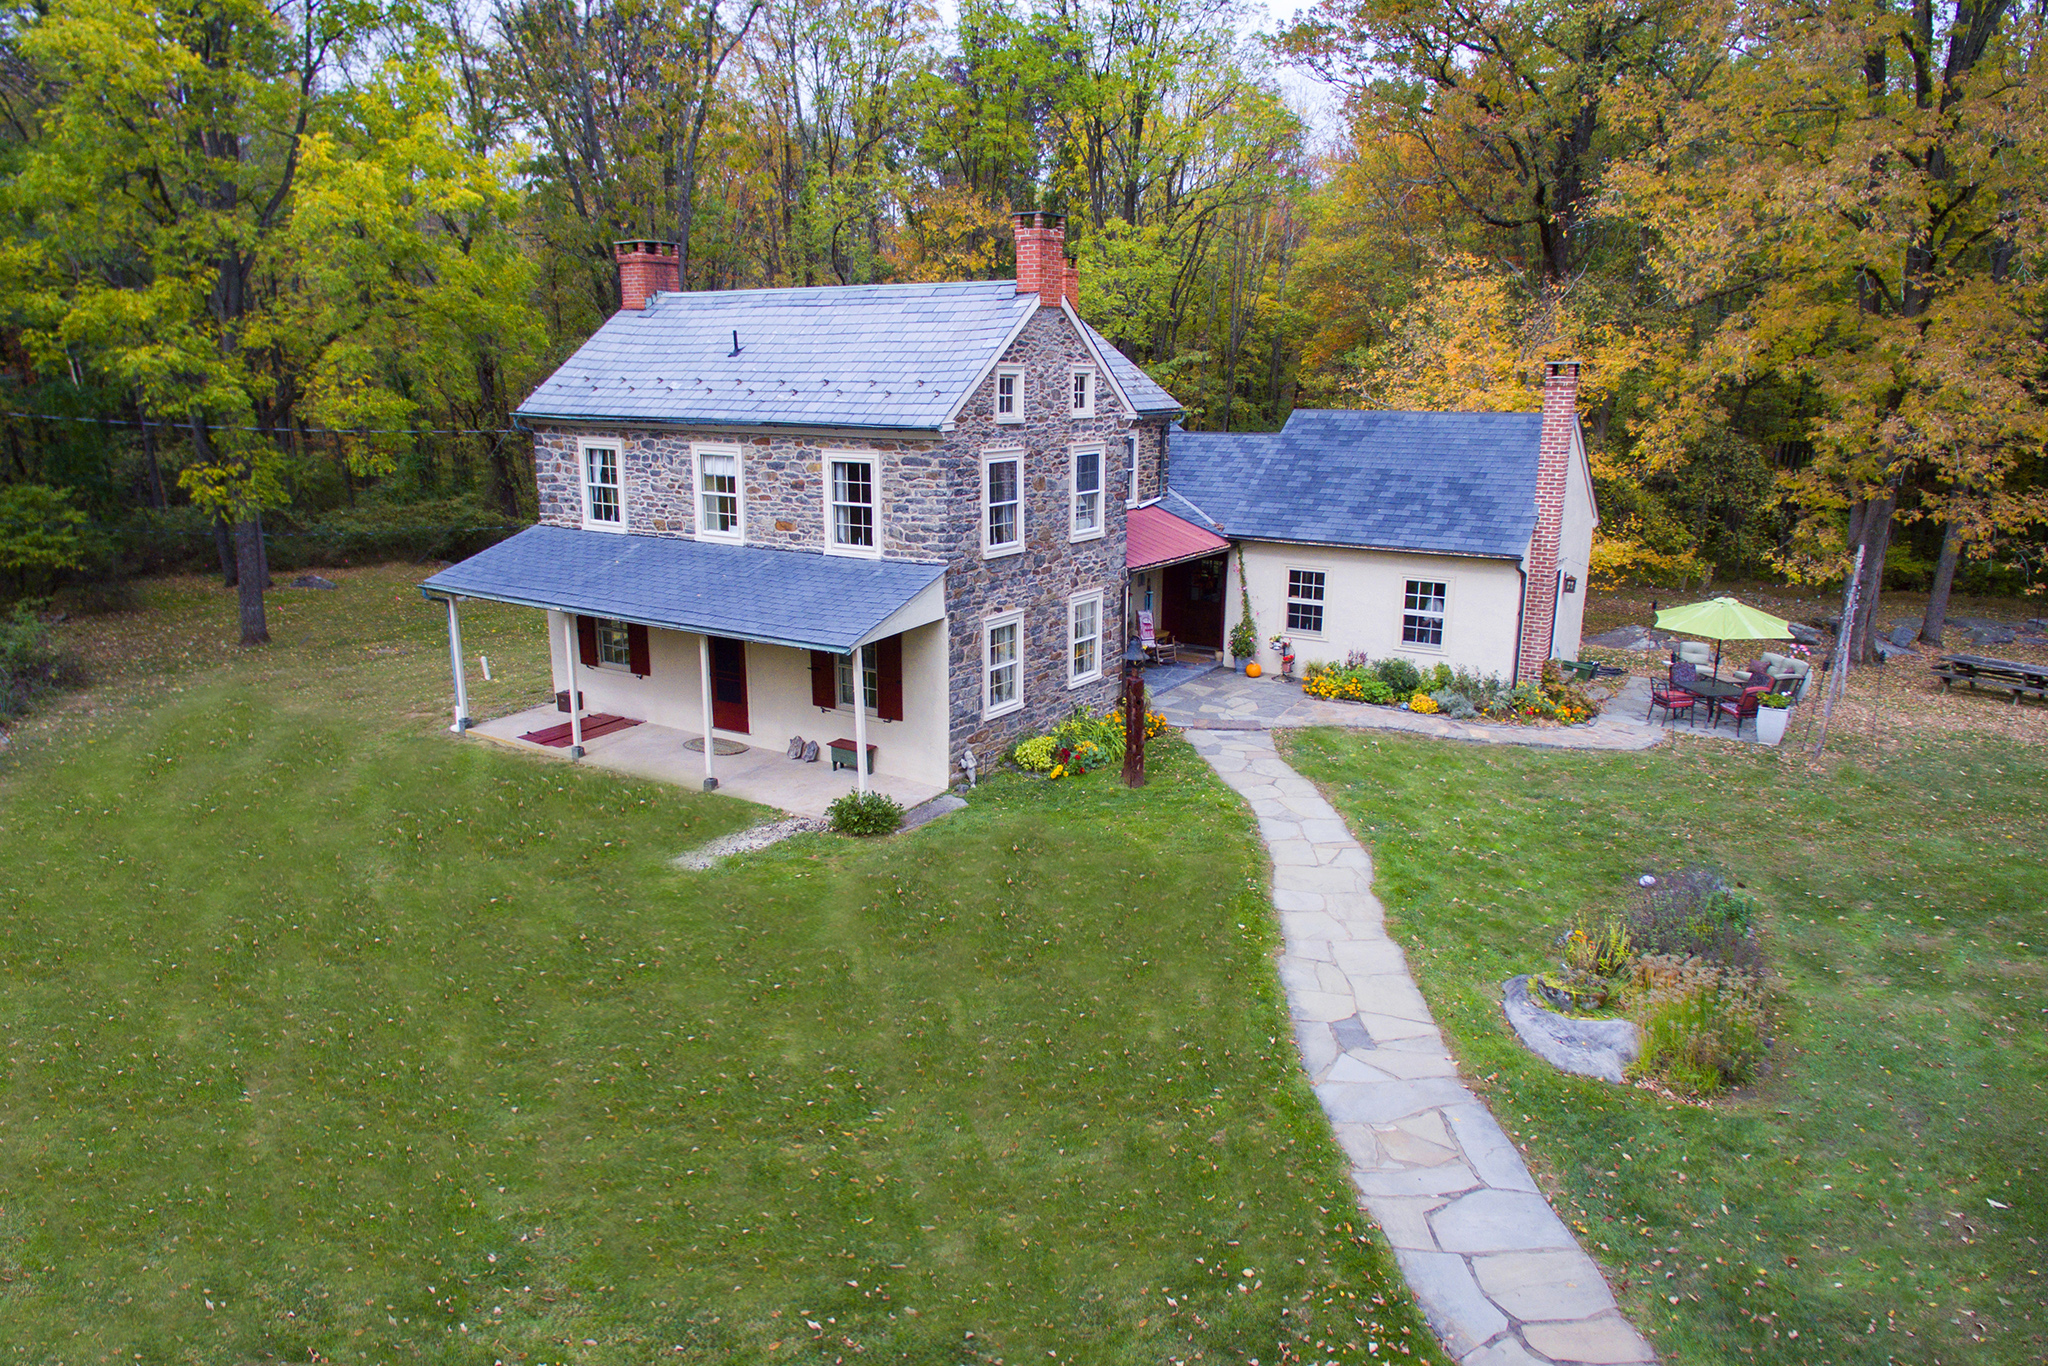 Stone Homes In Bucks | #StoneHomesInBucks | Bucks County Stone Farmhouse | #BucksCountyStoneFarmhouse